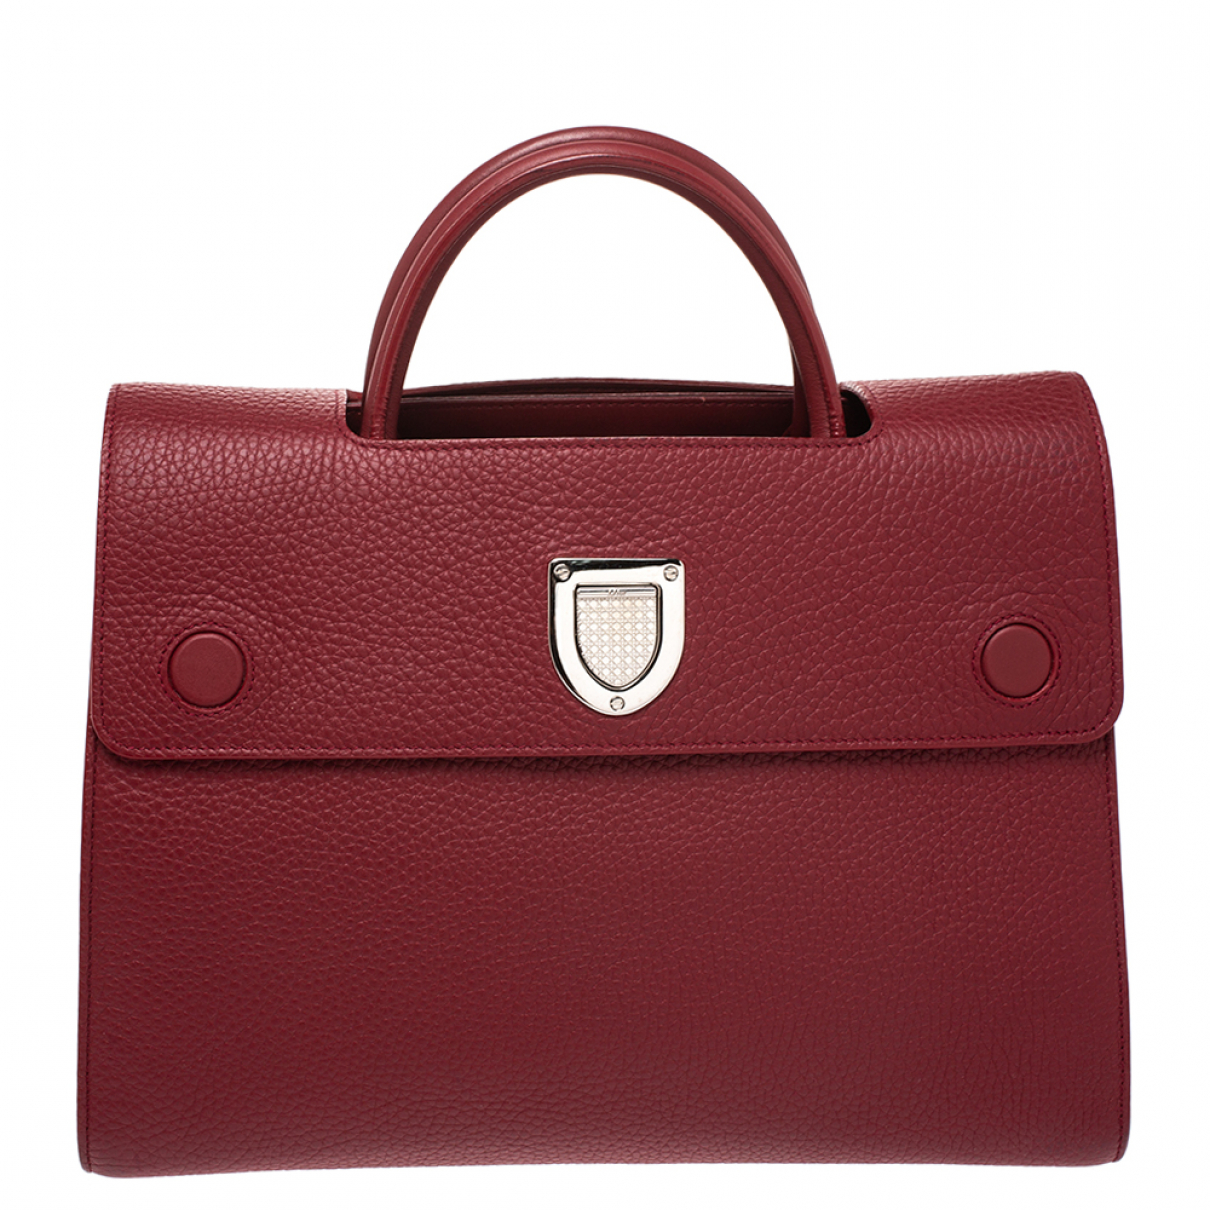 Dior \N Red Leather handbag for Women \N